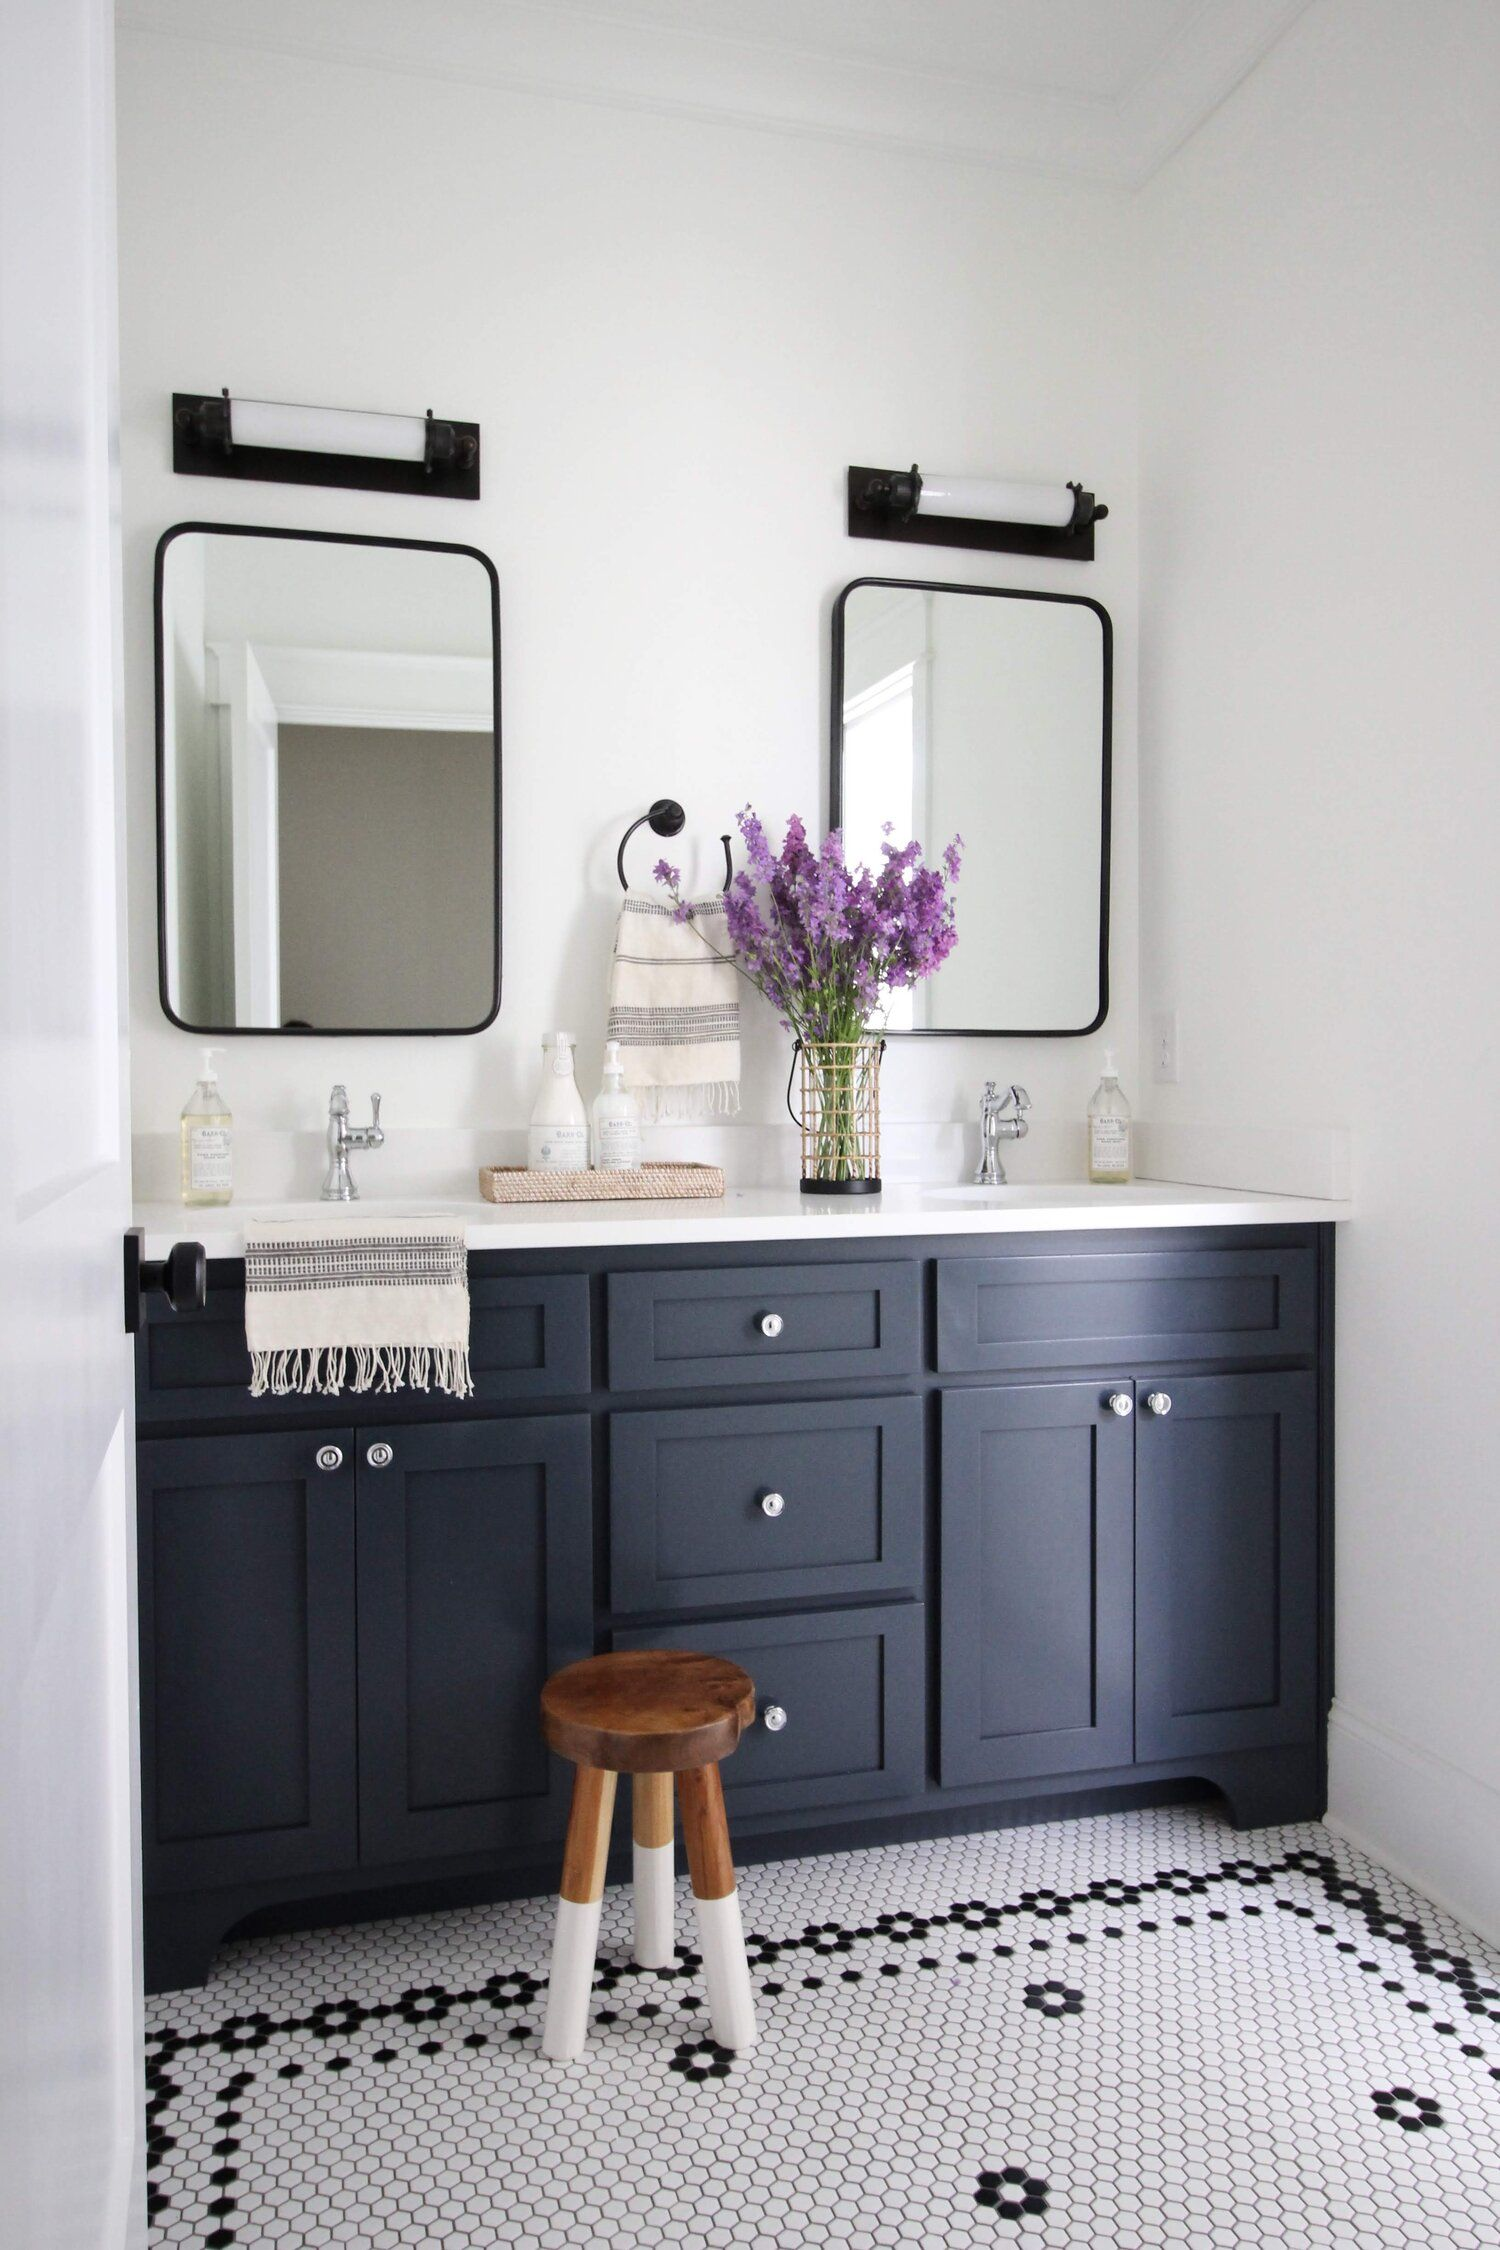 Chantilly House Laura Design Company Guest Bathroom With Navy Blue Vanity And Black White H White Bathroom Tiles Black White Bathrooms Blue Bathroom Vanity [ 2250 x 1500 Pixel ]